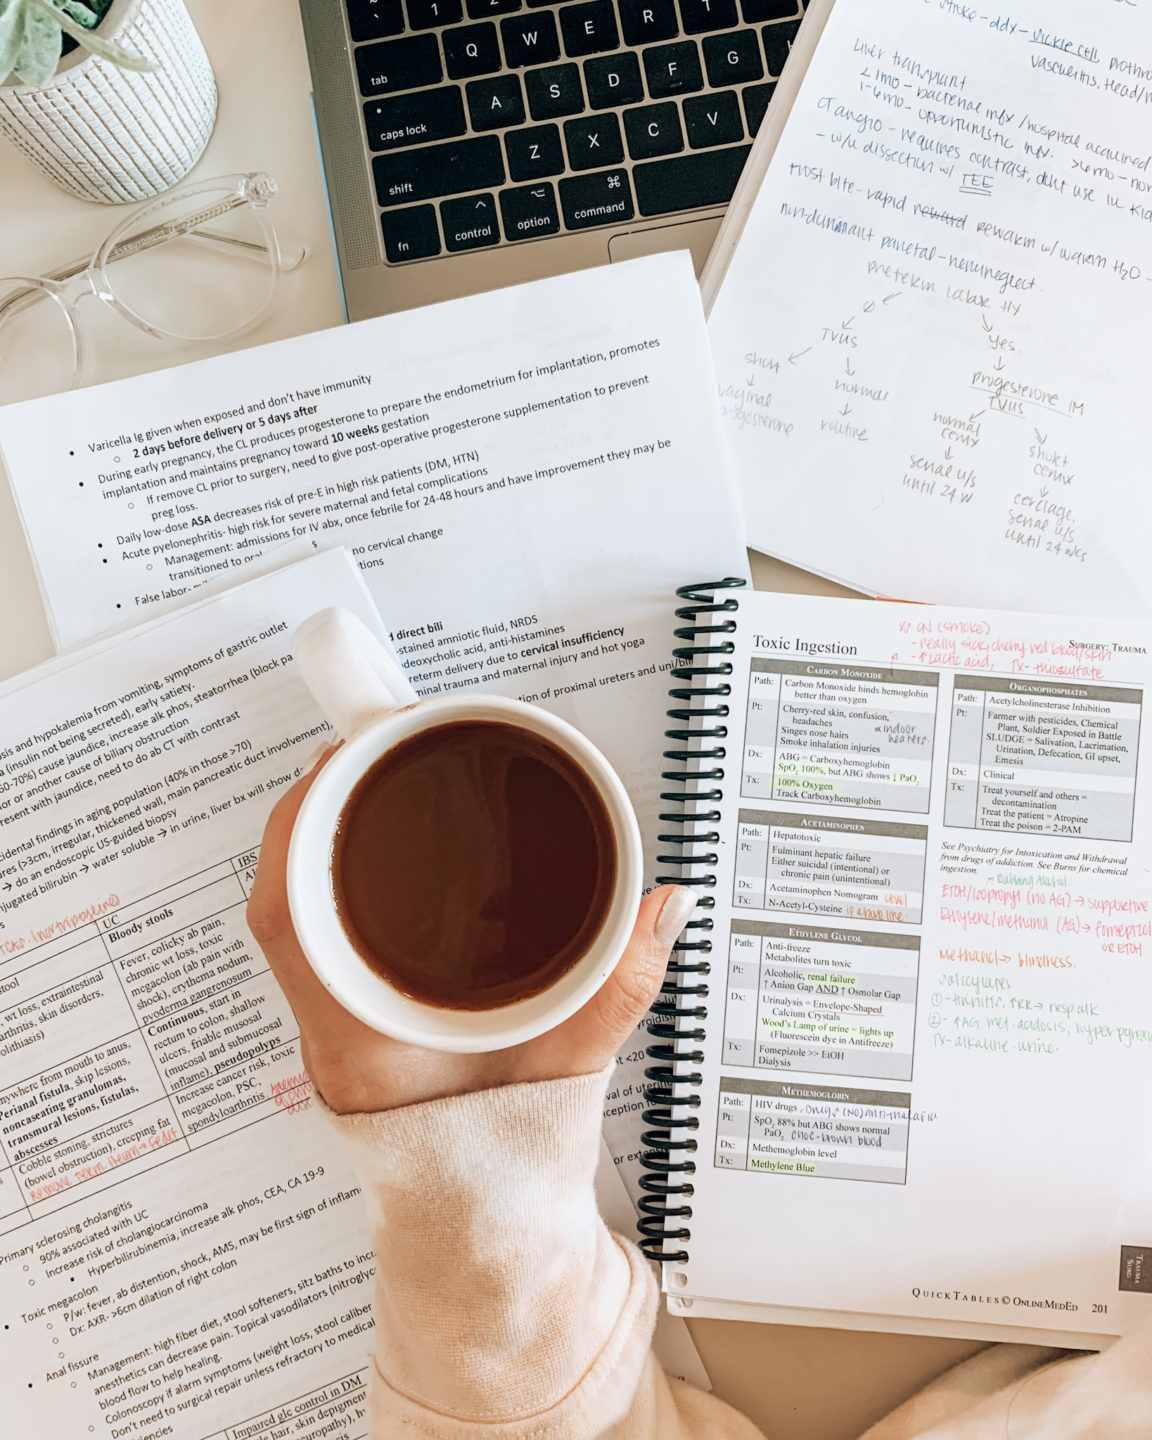 Free USMLE Step 2 CK Complete Study Schedule: How I Scored 269 in 5 weeks